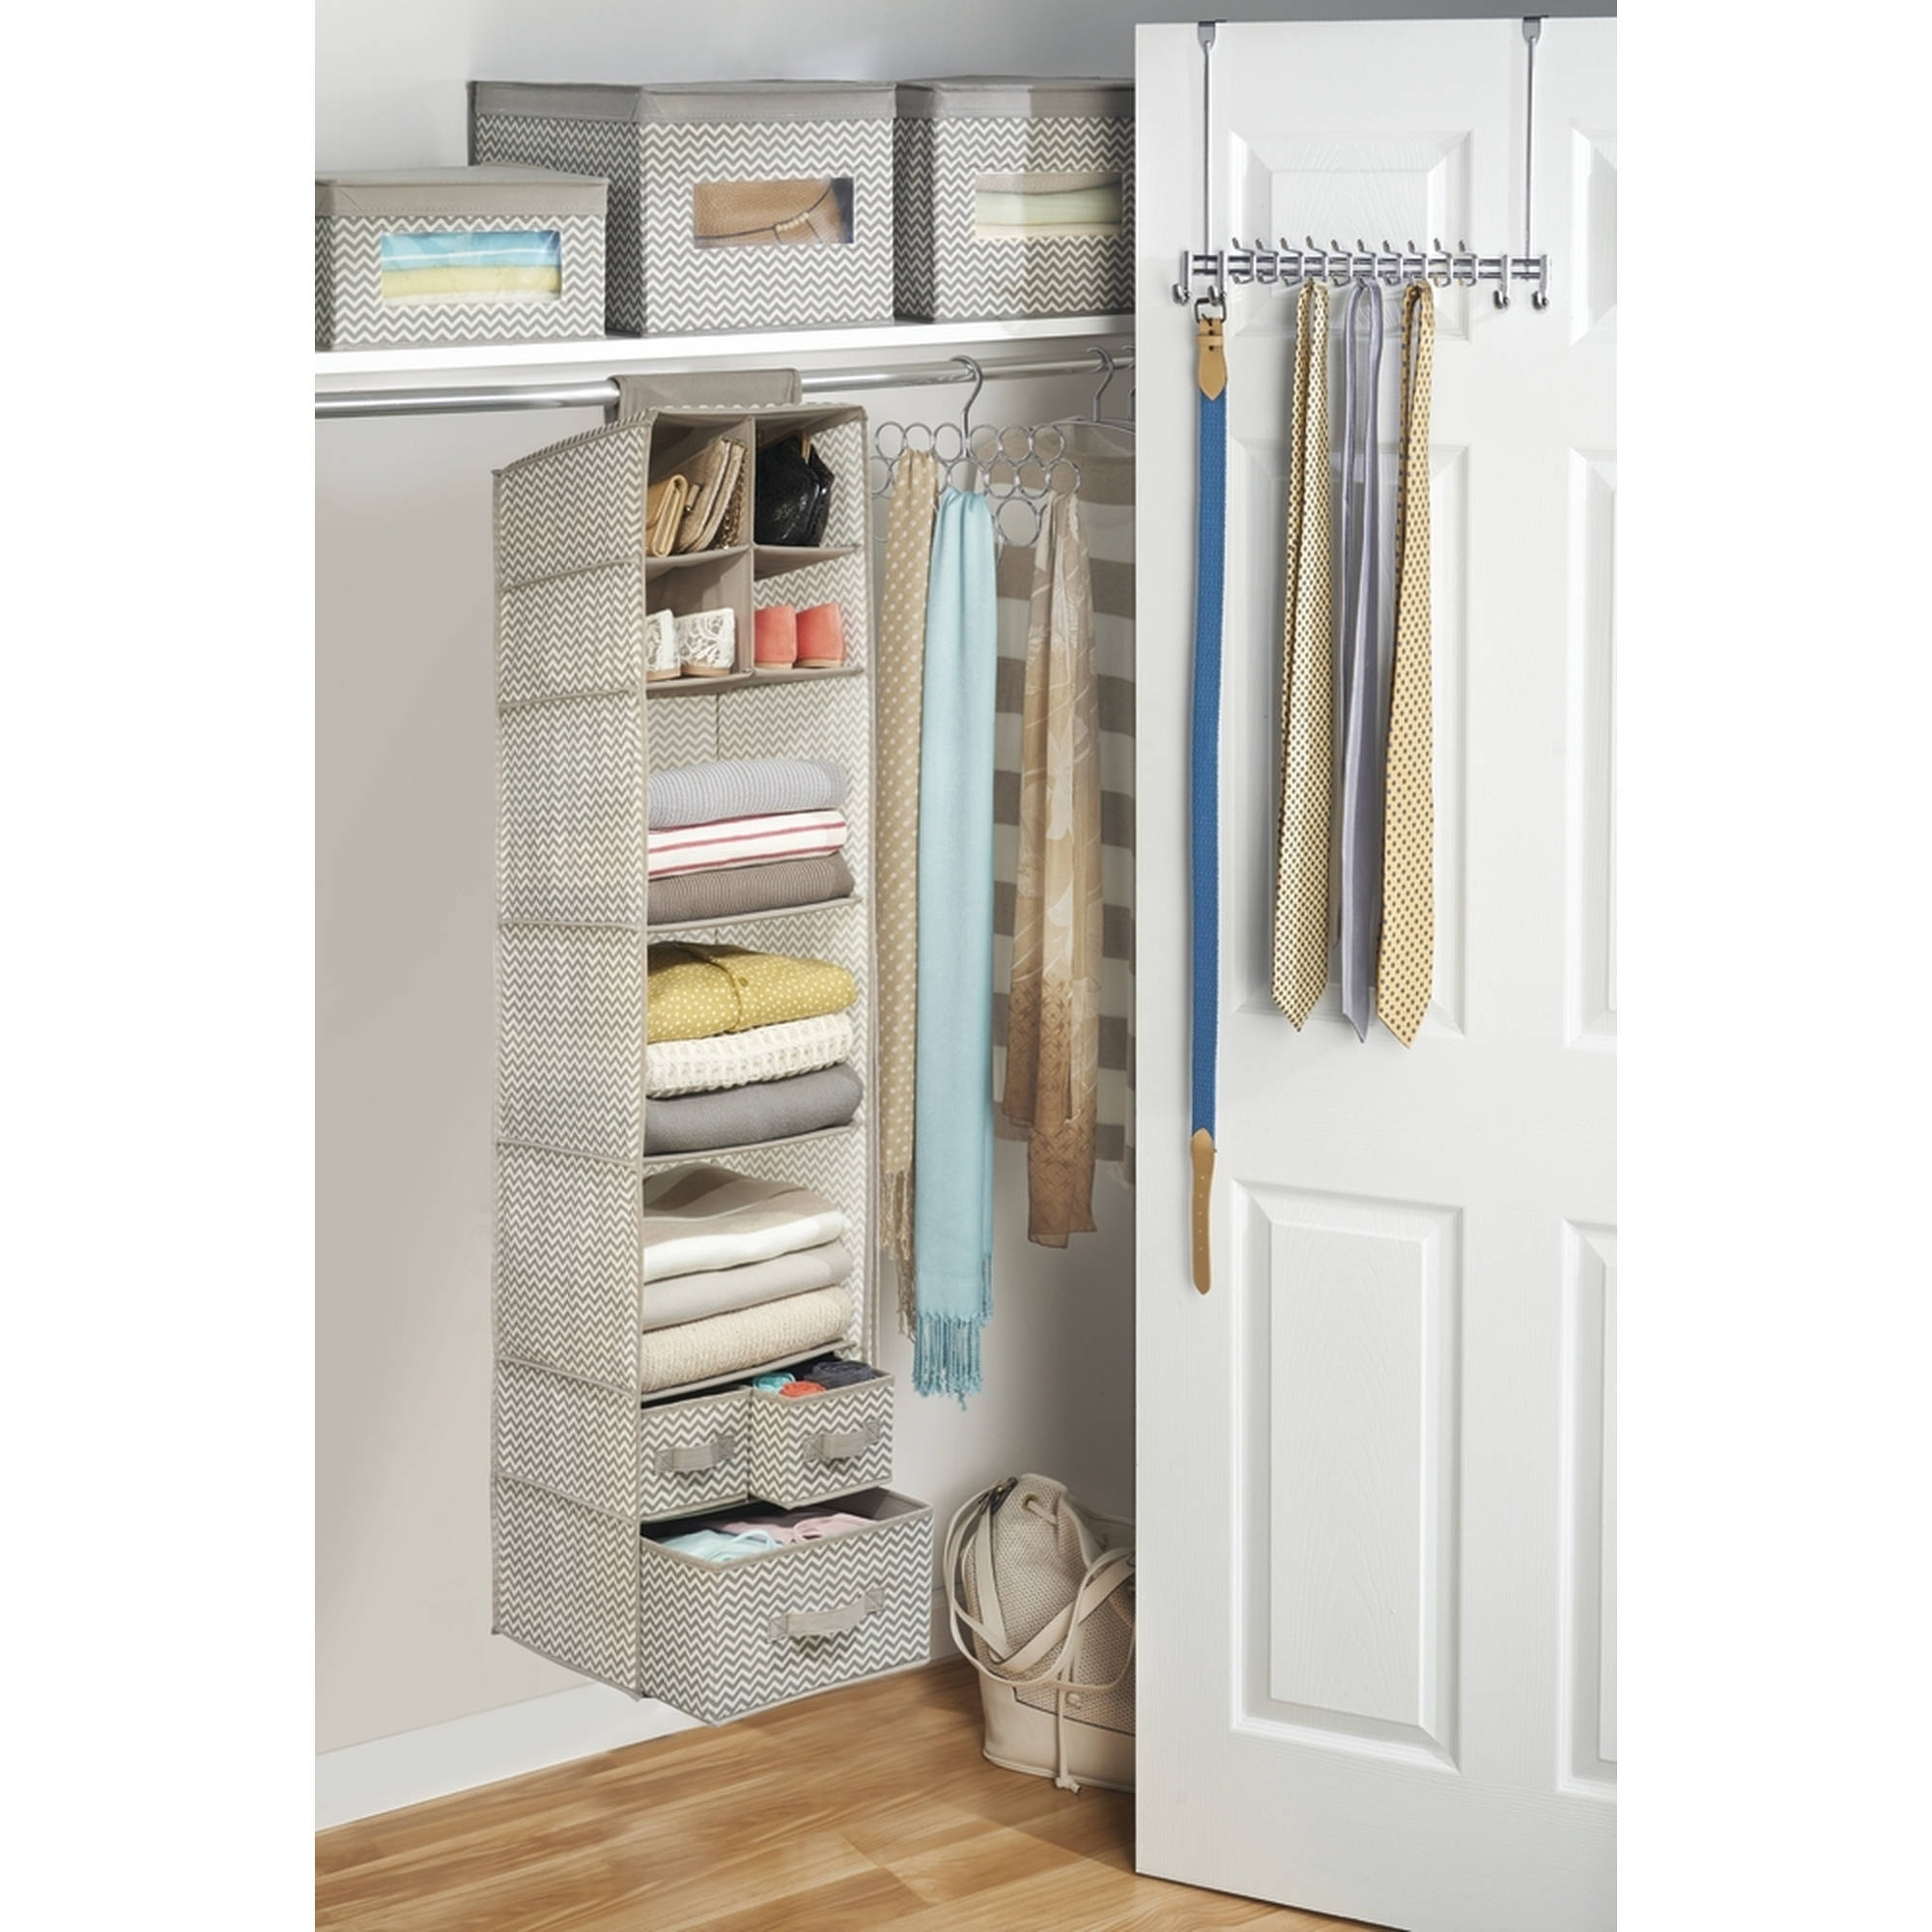 babies organiser beyond hang wardrobe bath with plus of well basket ikea as us bed closet organizer size australia full hanging drawers r double